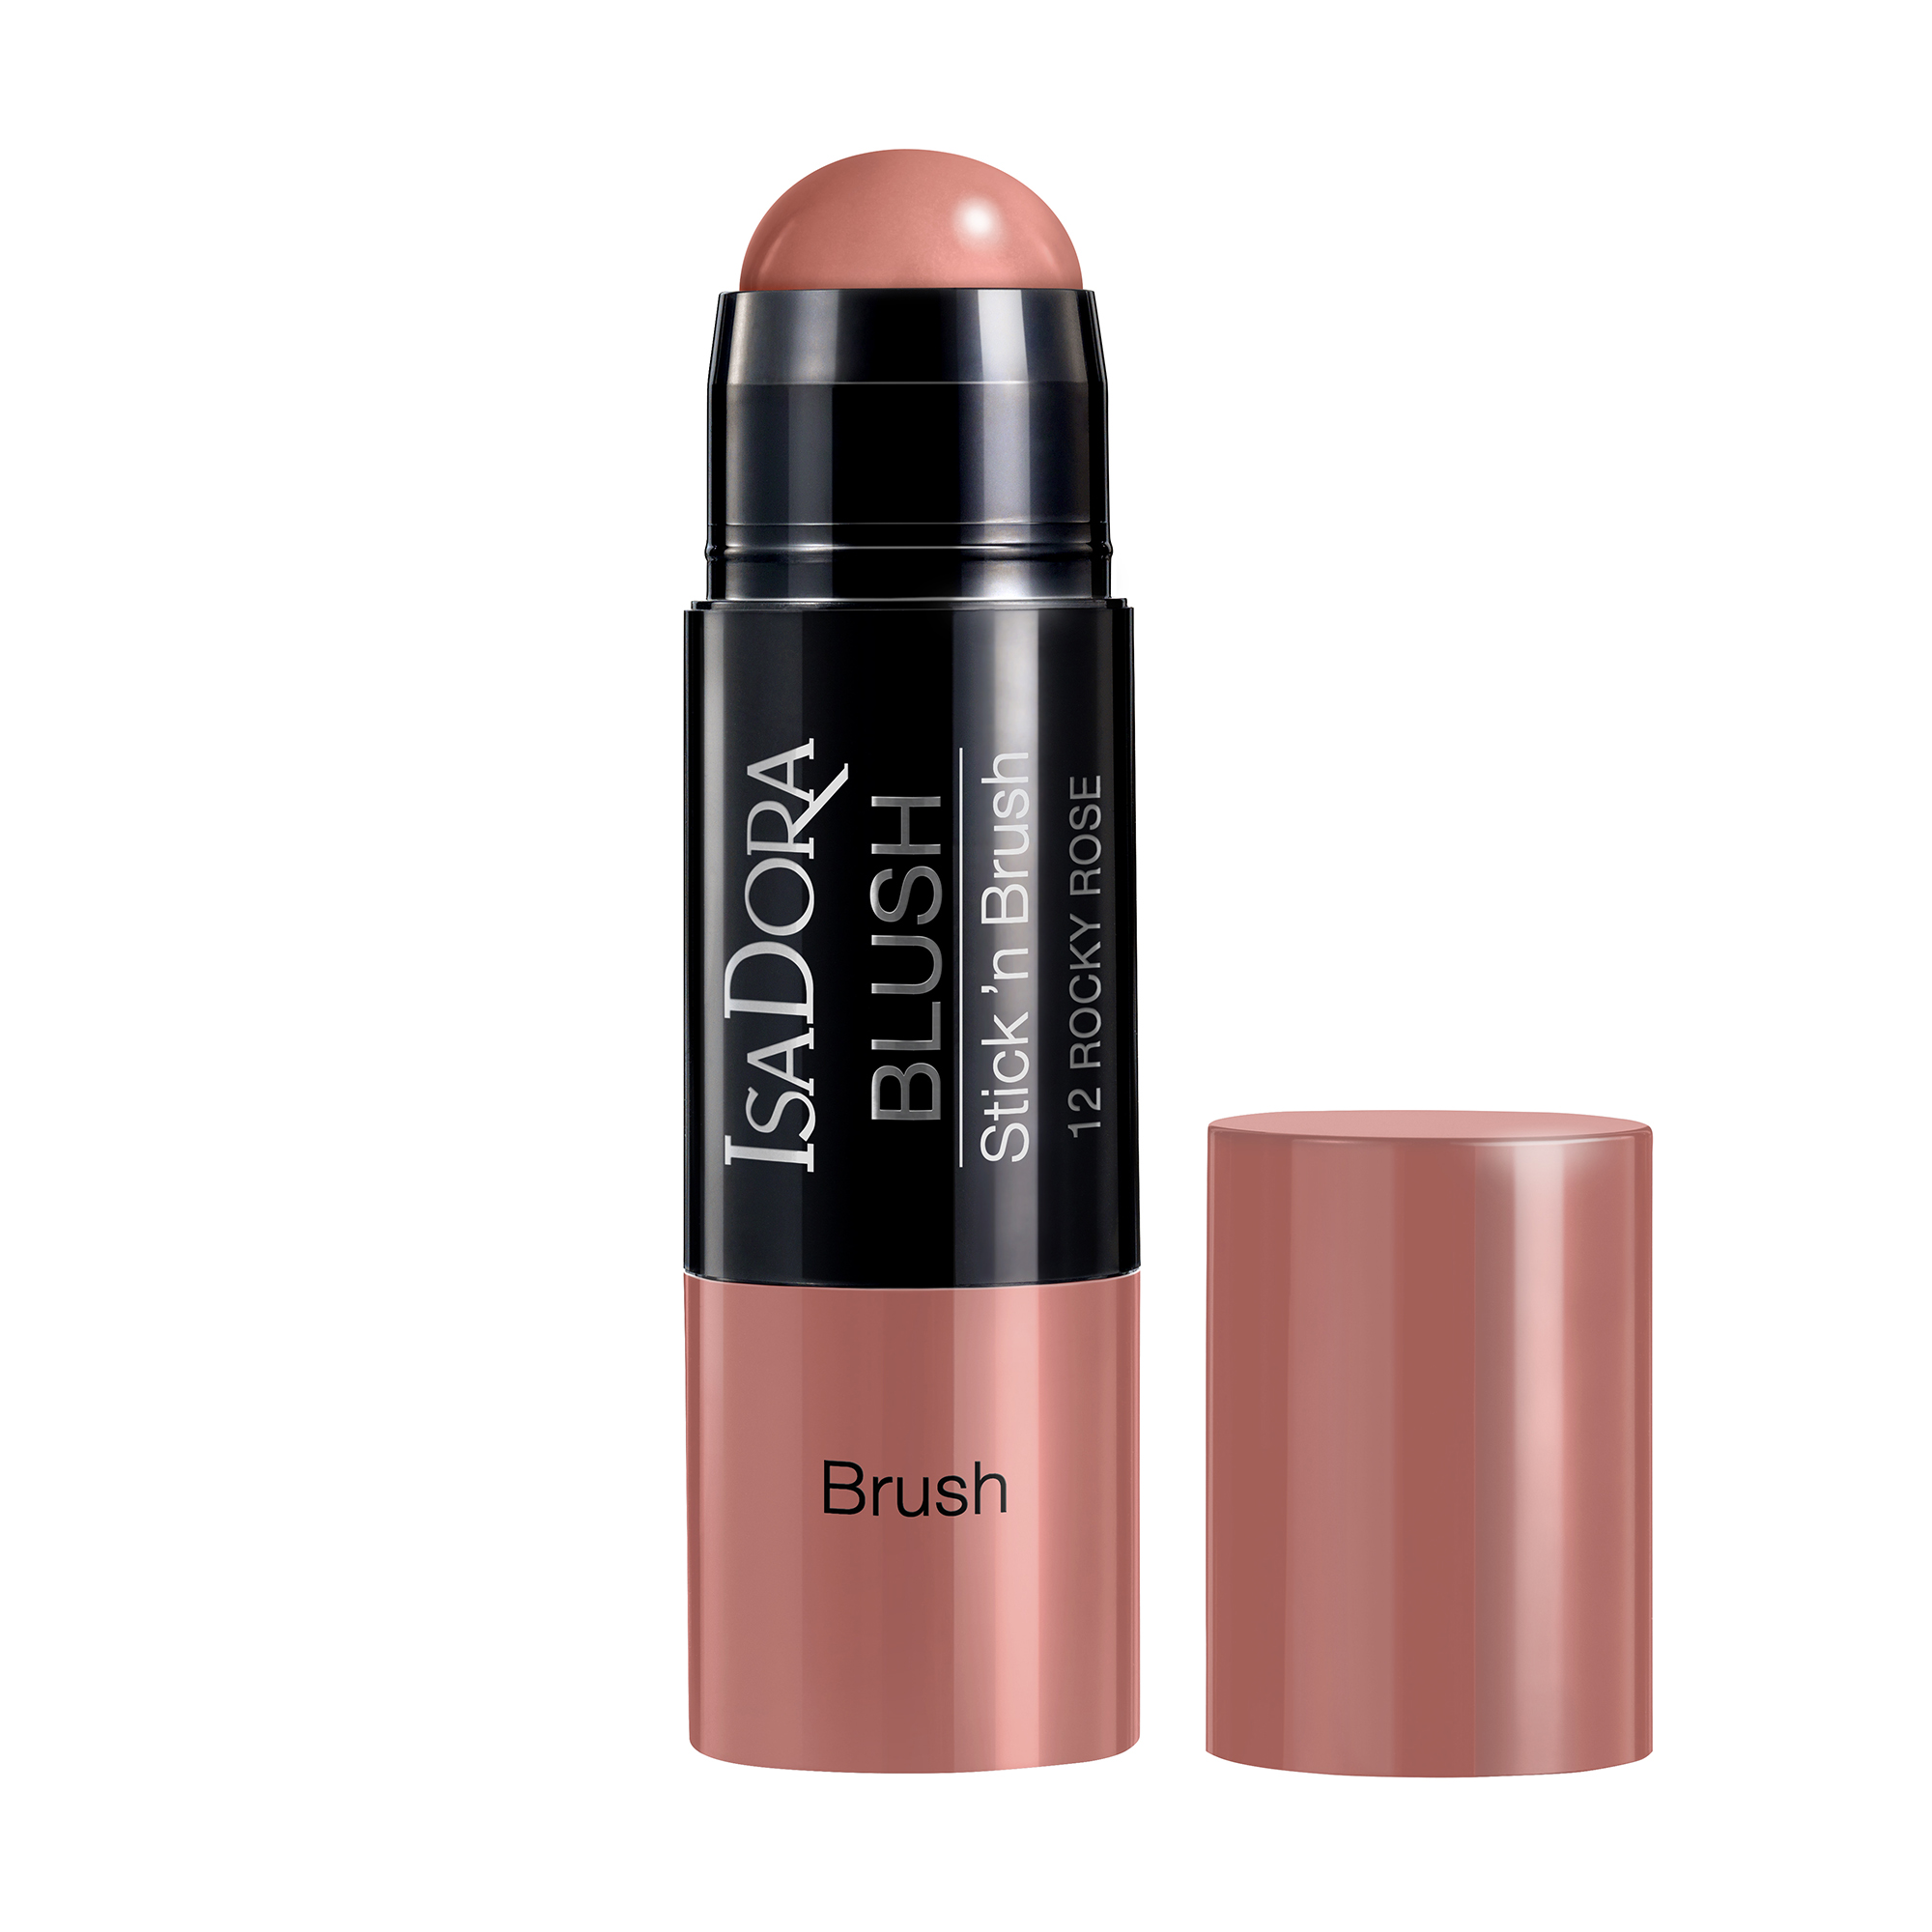 Blush Stick'n Brush